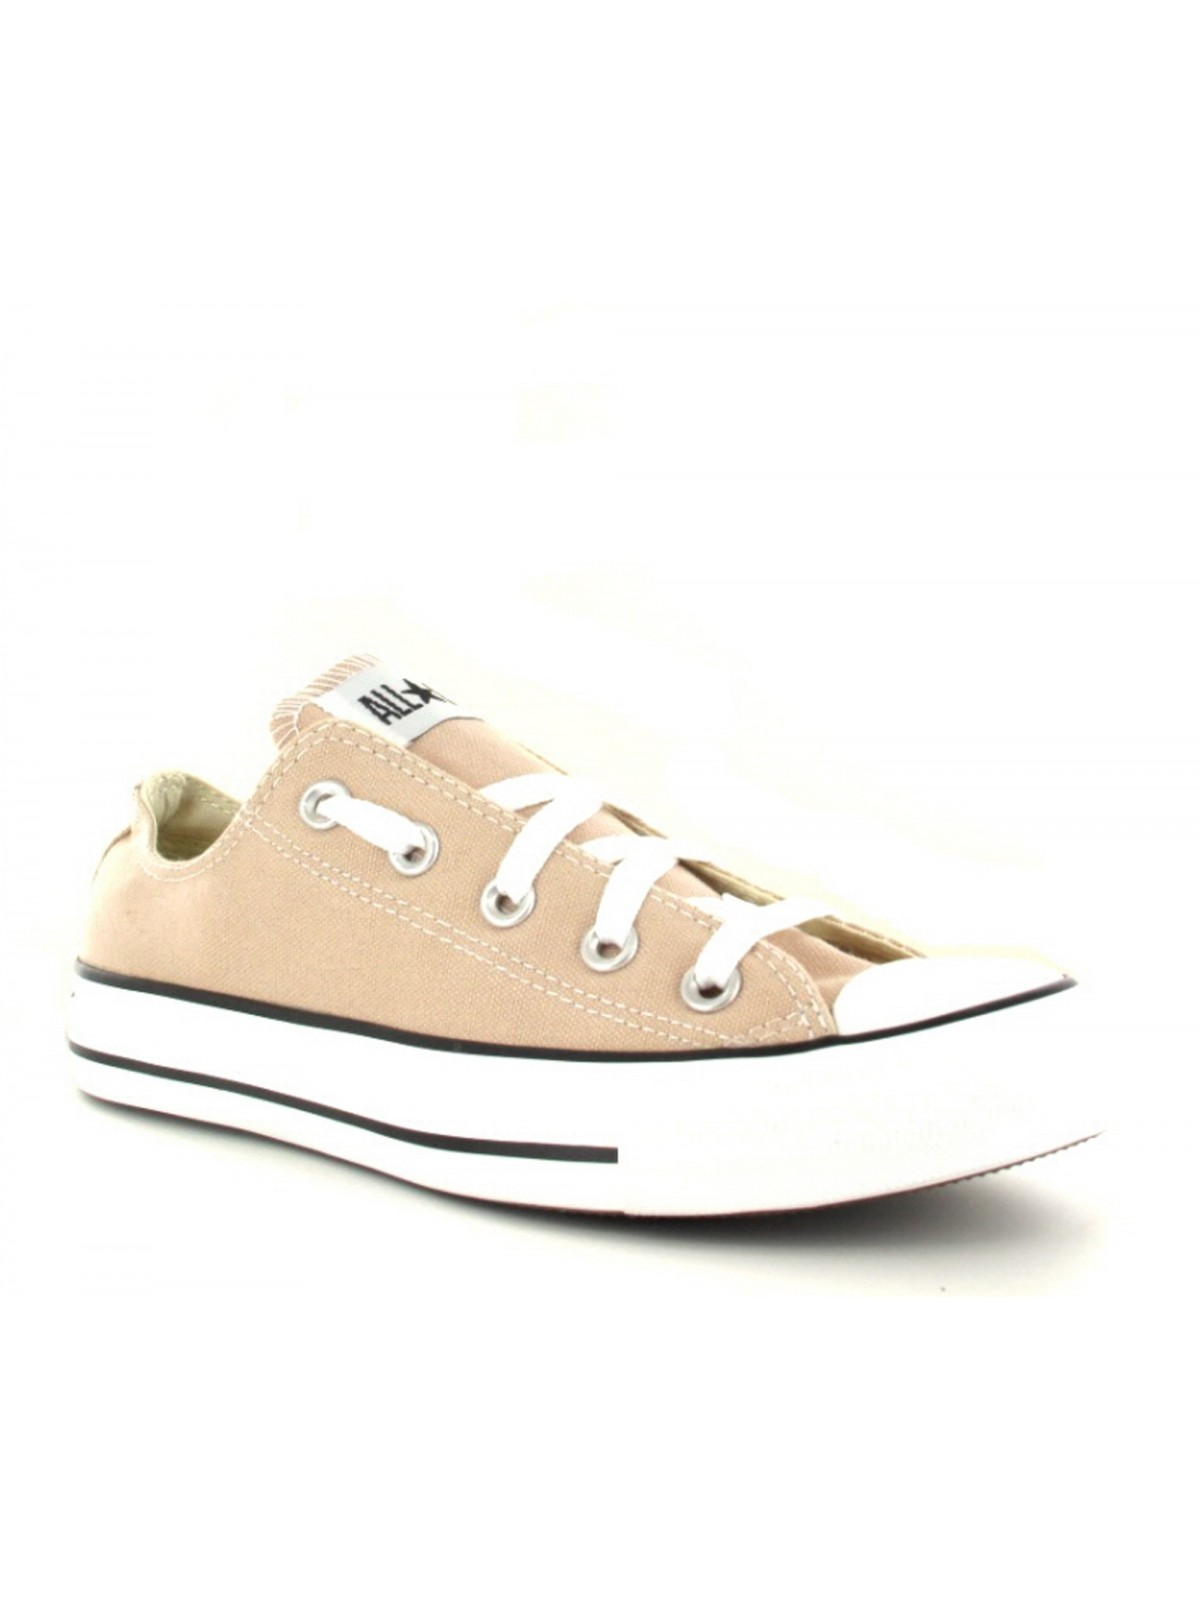 Converse Chuck Taylor all star toile basse beige clair